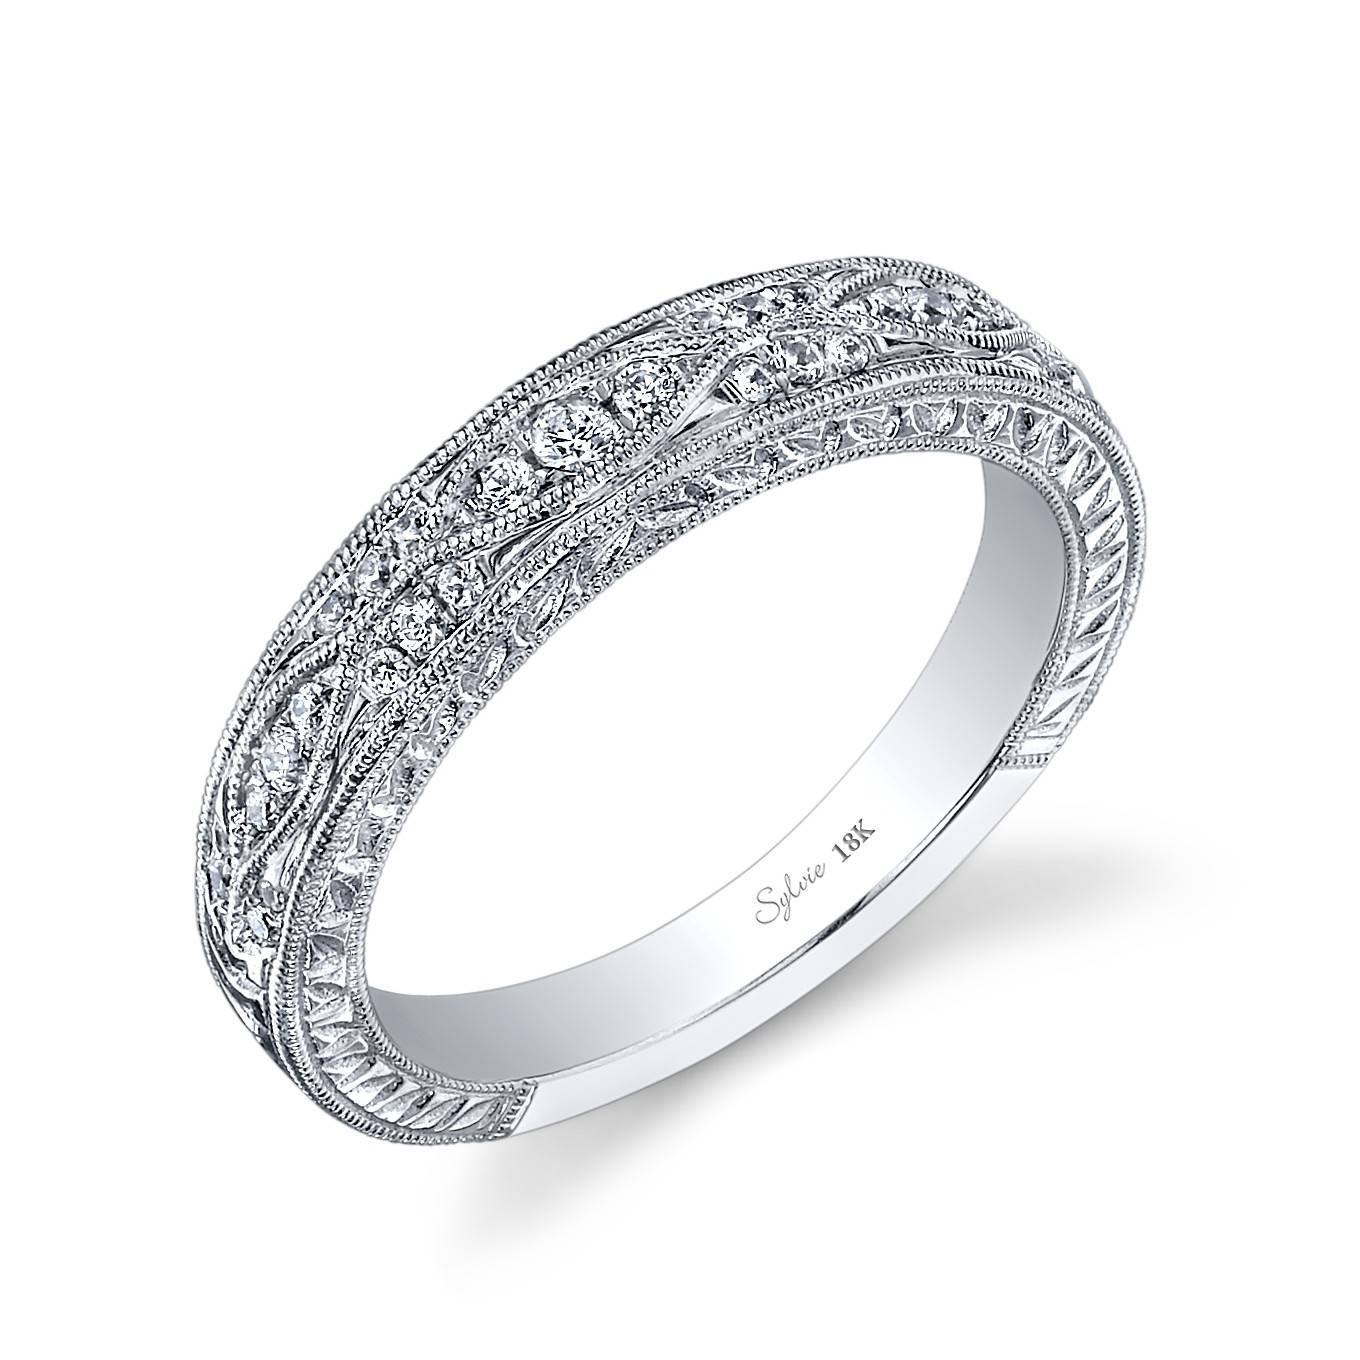 Wedding Rings : Engraved Wedding Bands For Couples Engravable With Regard To Etched Wedding Rings (View 15 of 15)